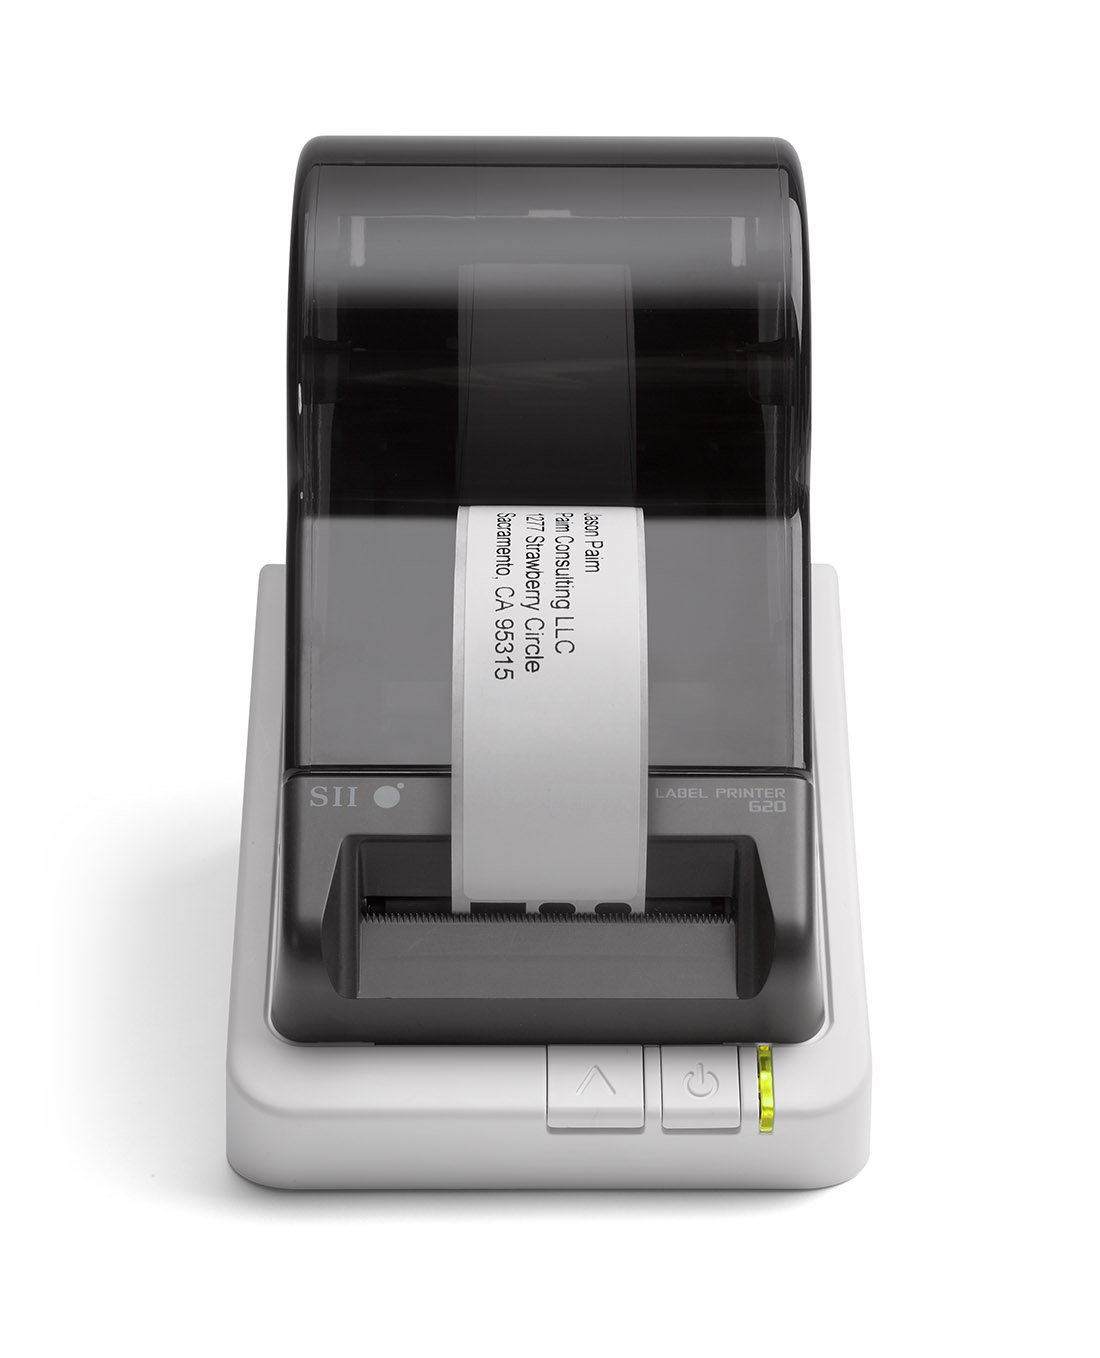 Seiko Instruments Smart Label Printer 620, USB, PC/Mac, 2.76 inches/second by Seiko Instruments